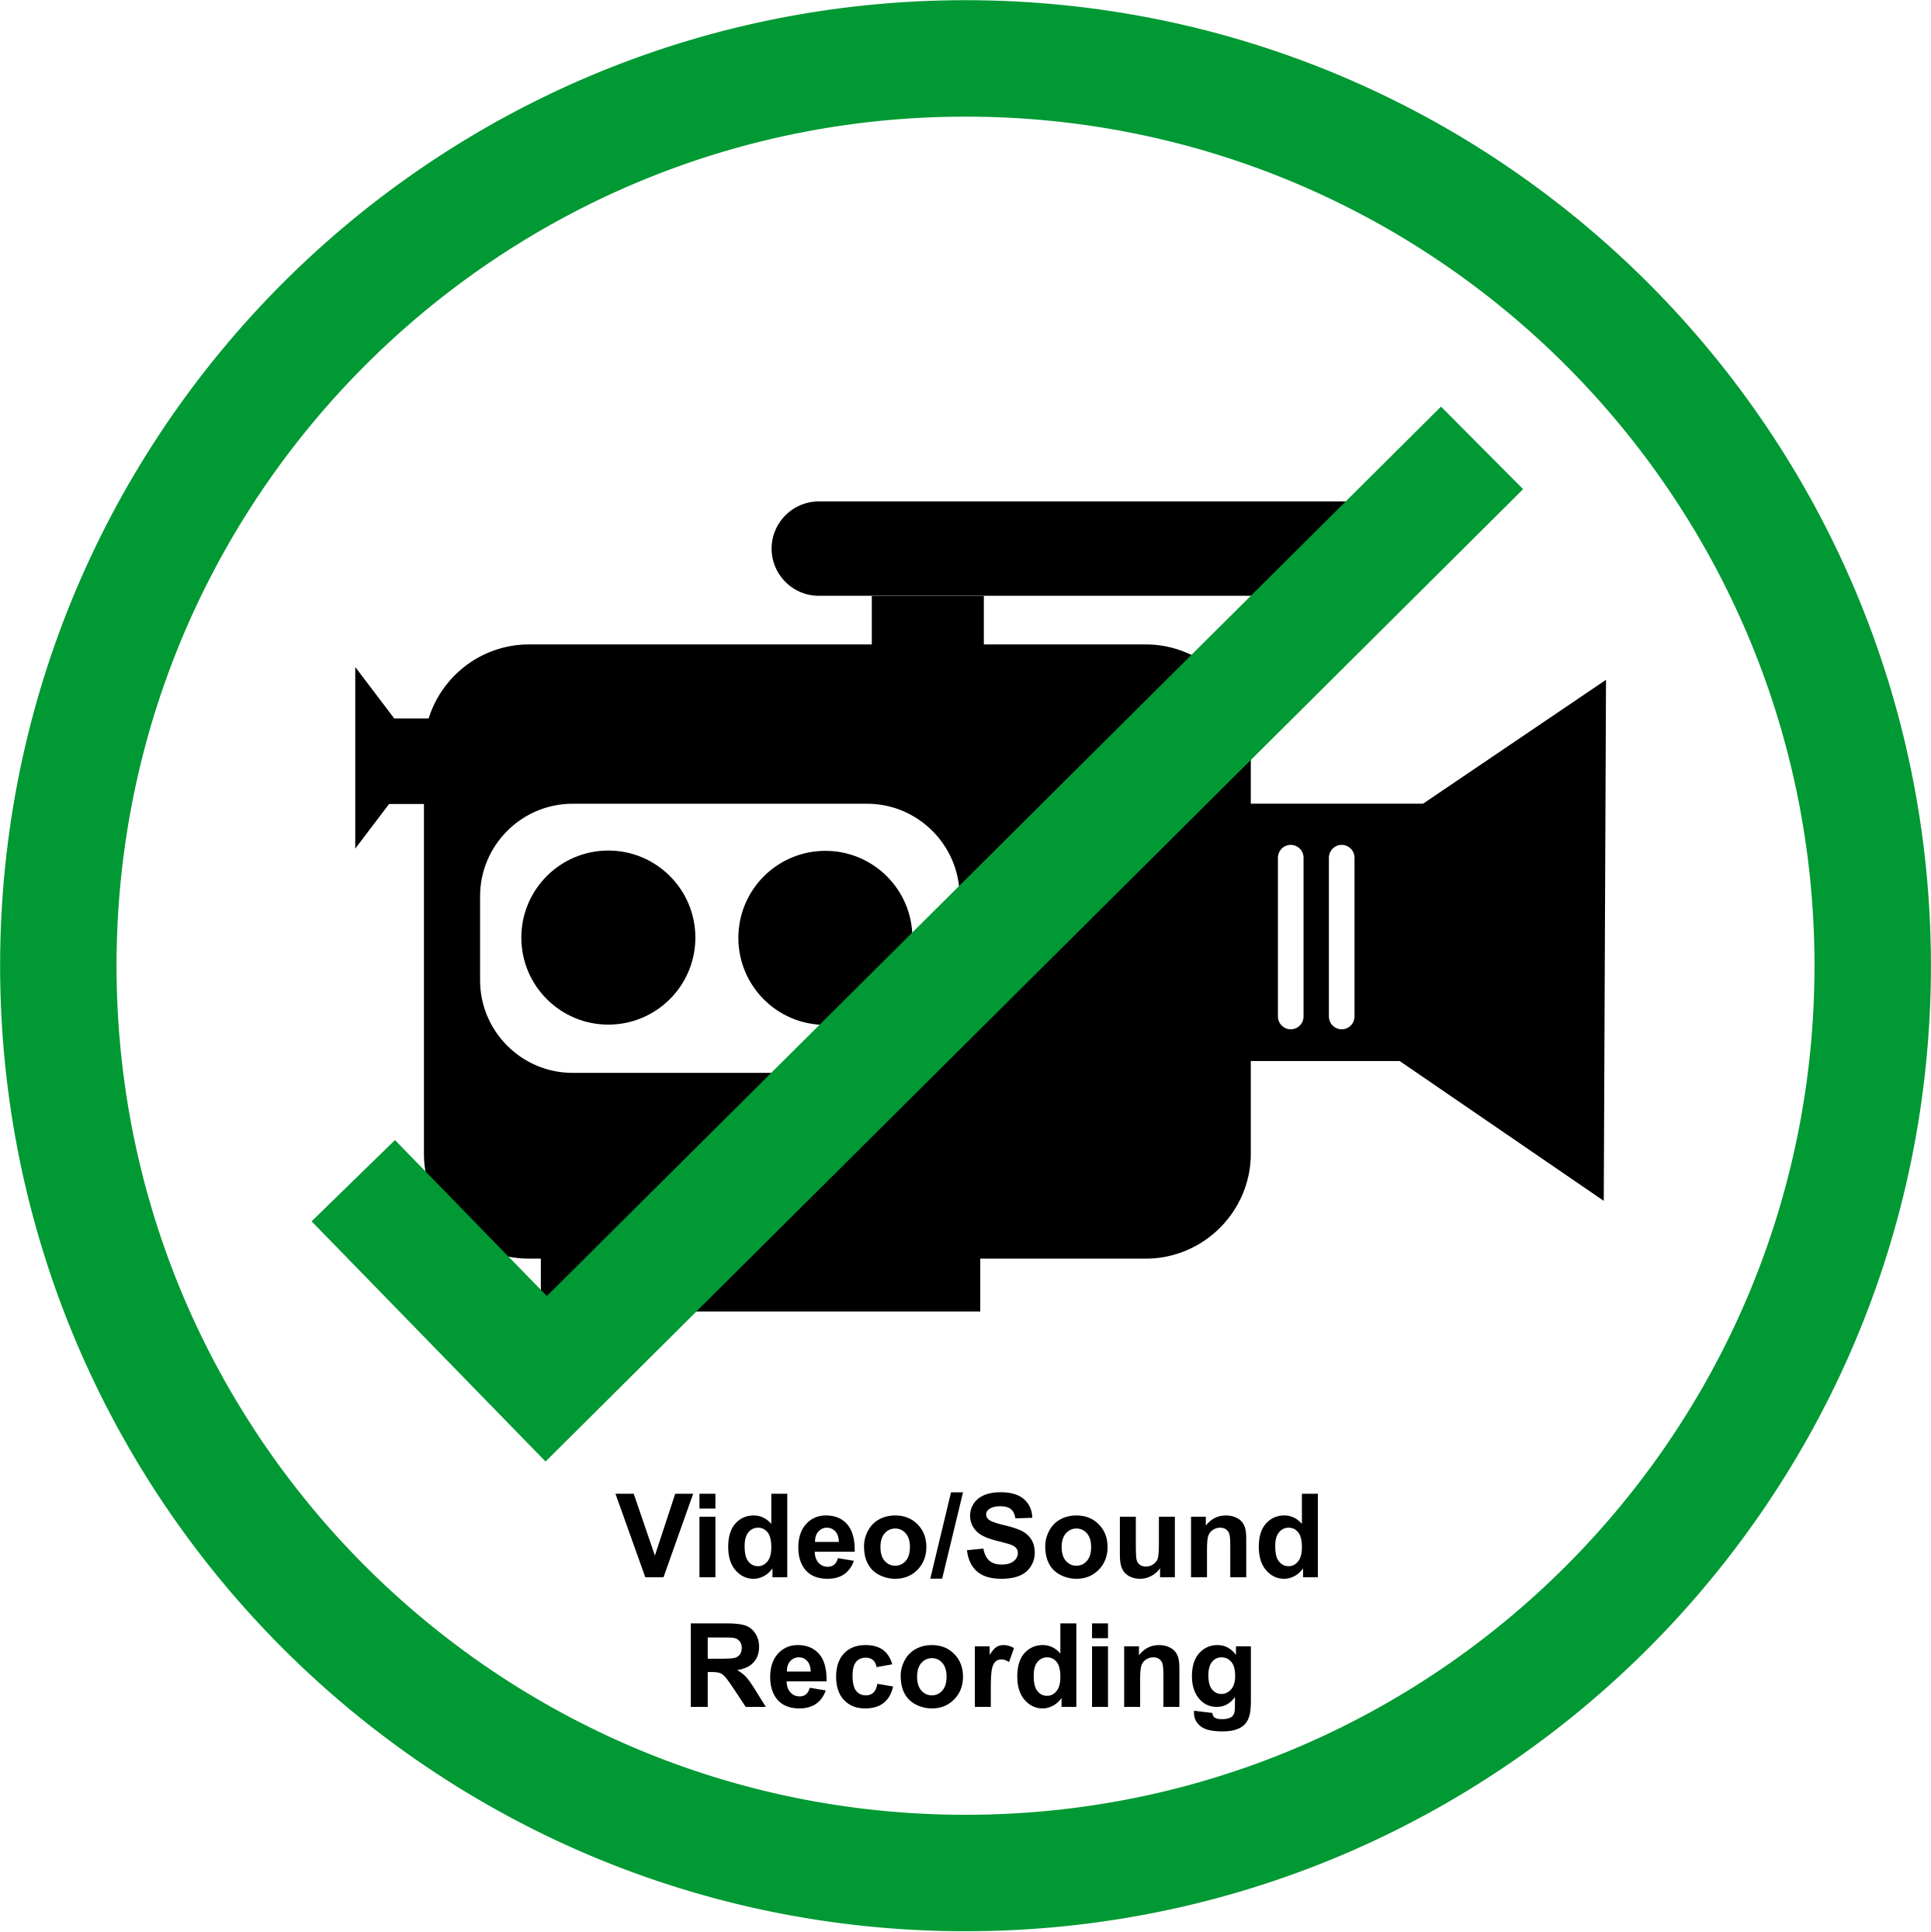 Permission Sign - Recording/Streaming allowed